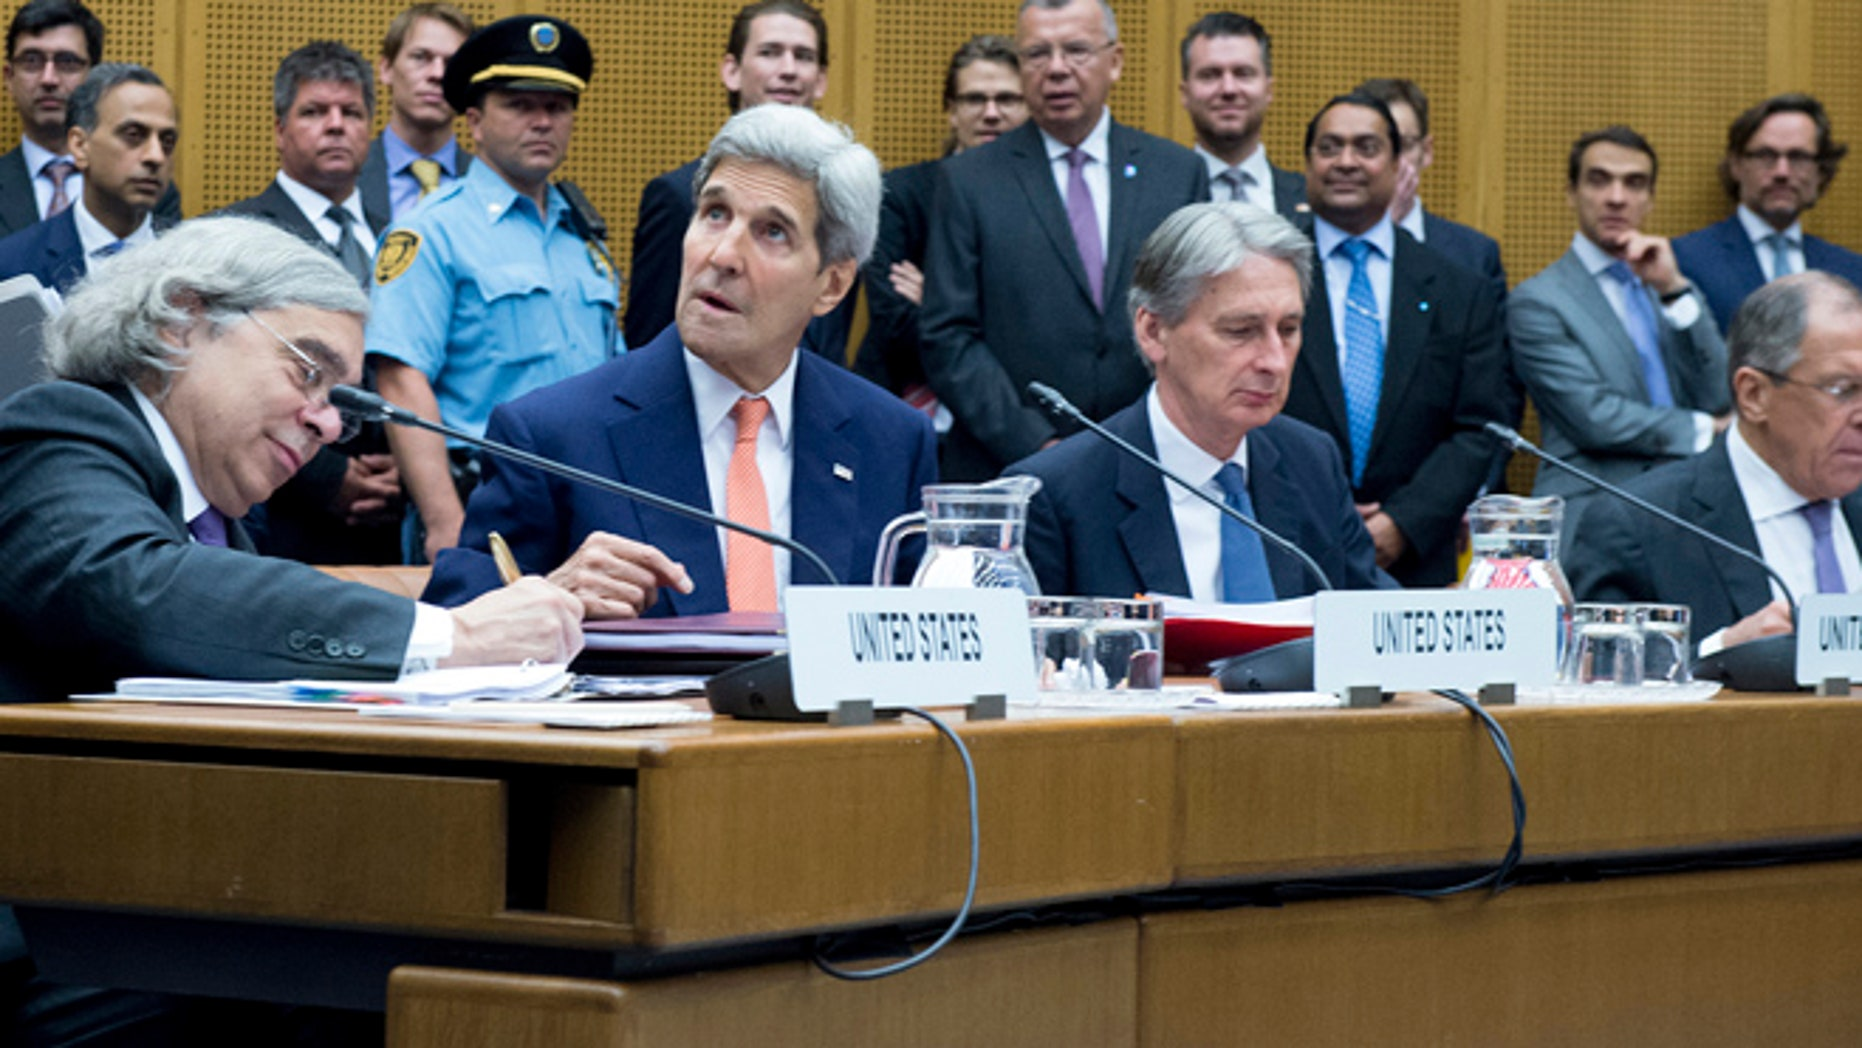 July 14: U.S. Secretary of Energy Ernest Moniz, U.S. Secretary of State John Kerry, British Foreign Secretary Philip Hammond and Russian Foreign Minister Sergey Lavrov (L-R) attend the last plenary session at the United Nations building in Vienna, Austria.